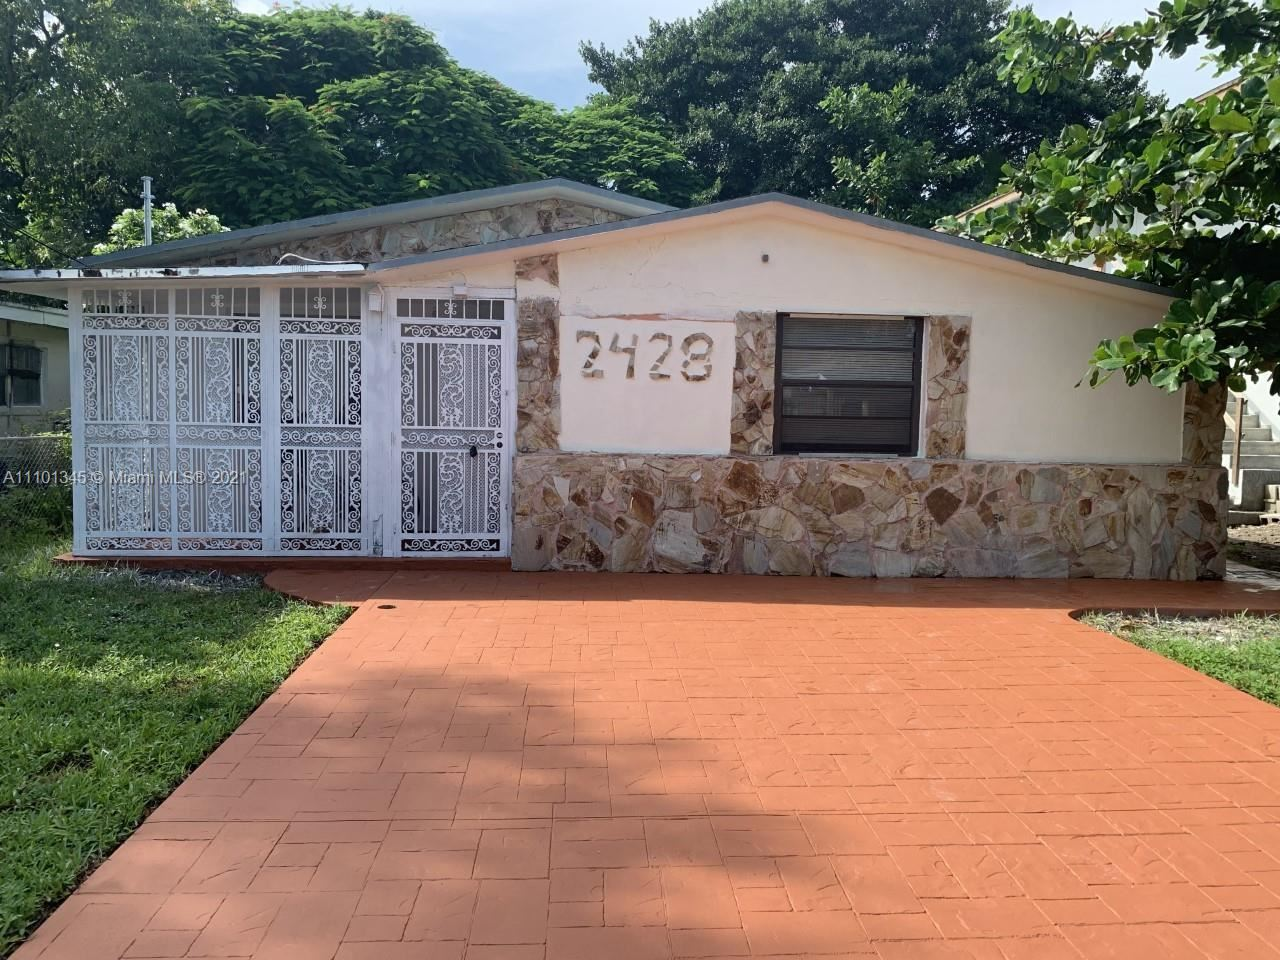 2428 NW 42nd St, Miami, FL 33142 - #: A11101345